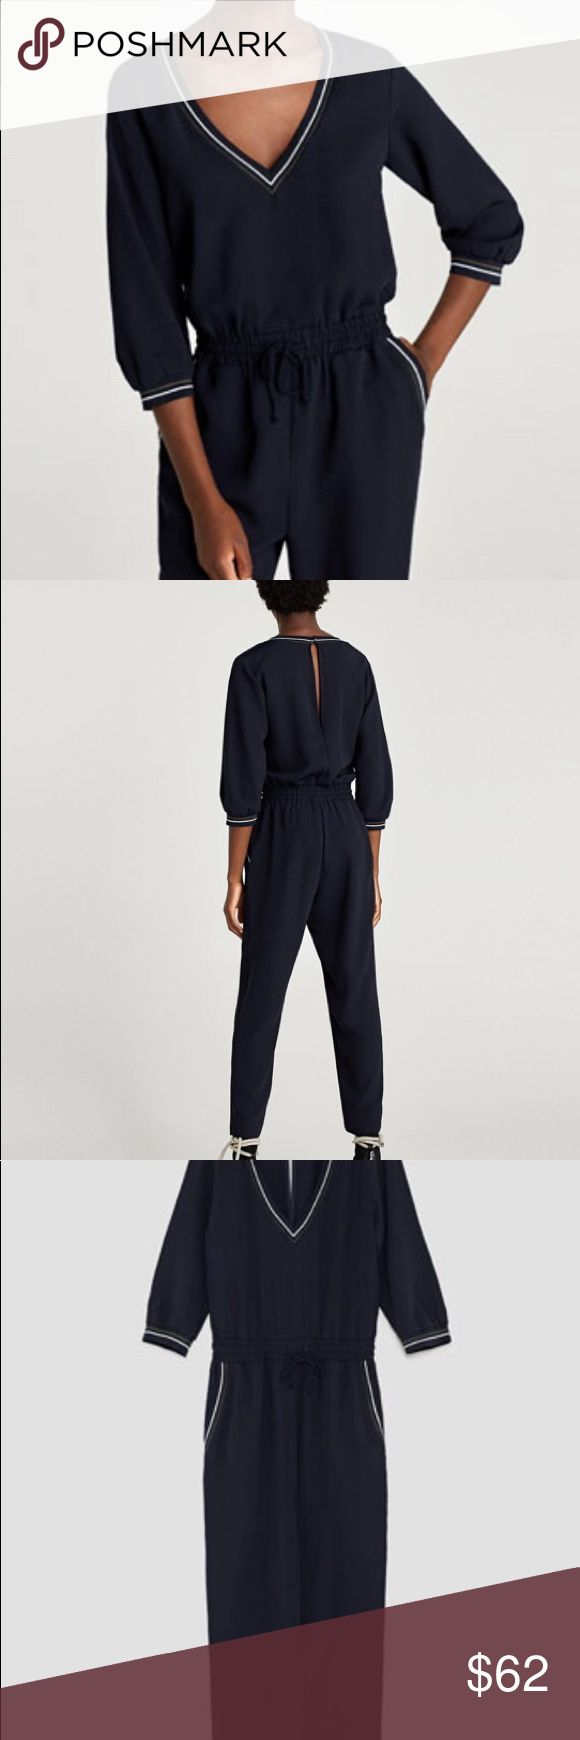 Zara jumpsuit BRAND NEW!! This season New with tags Zara jumpsuit! Perfect for a night out. Zara Other